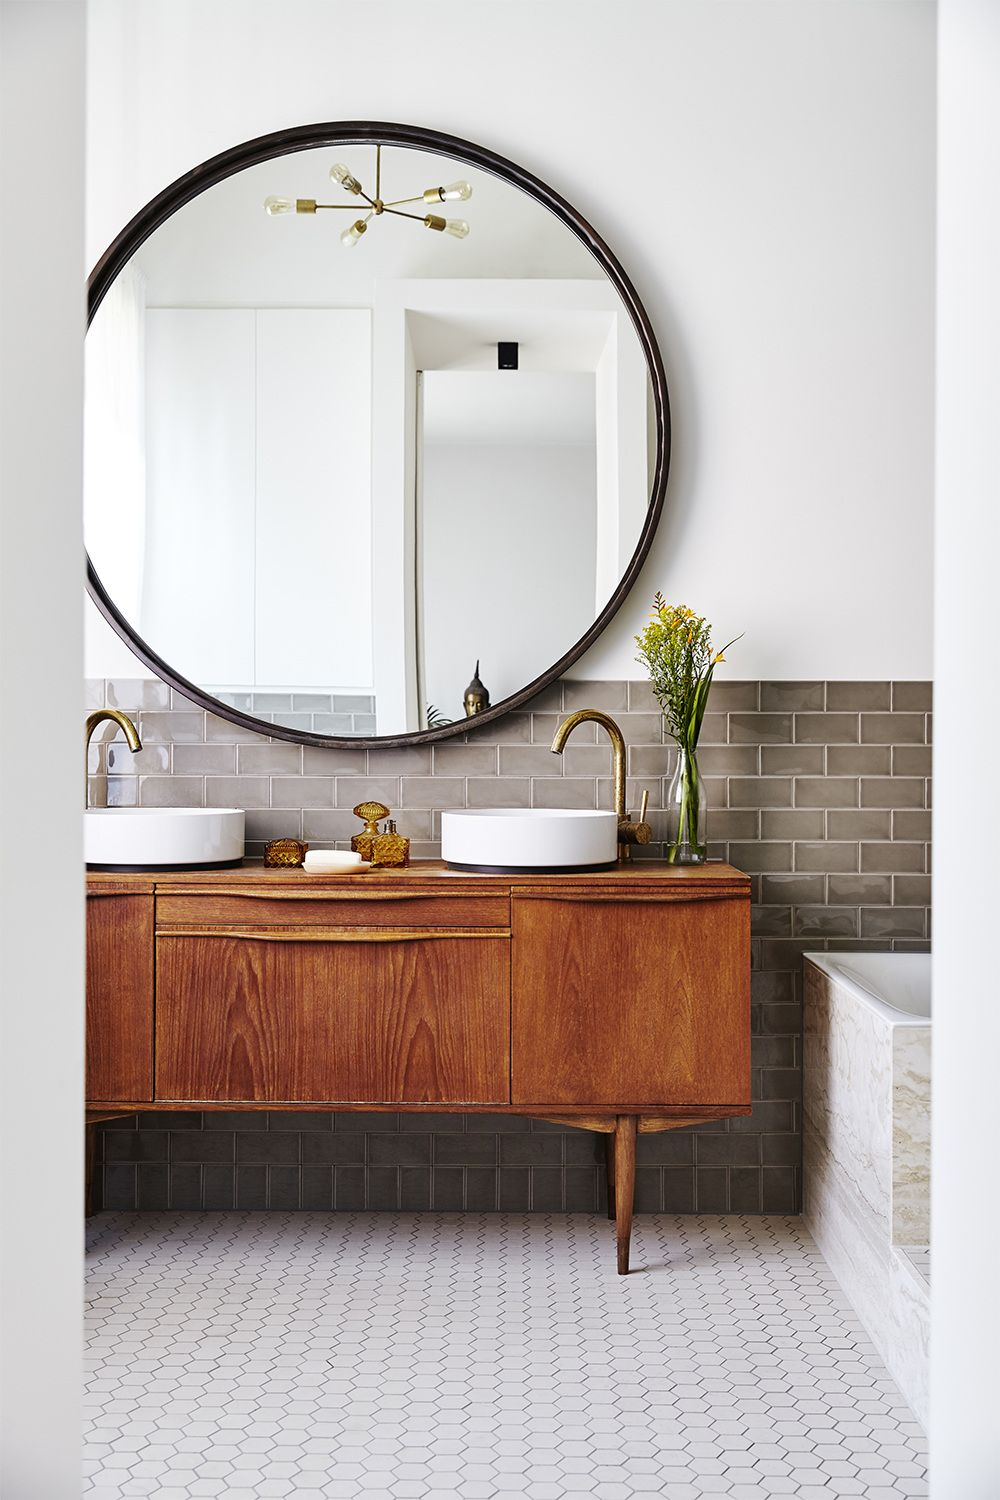 Huge round mirror, quirky vintage chic with a vibrant modern ...